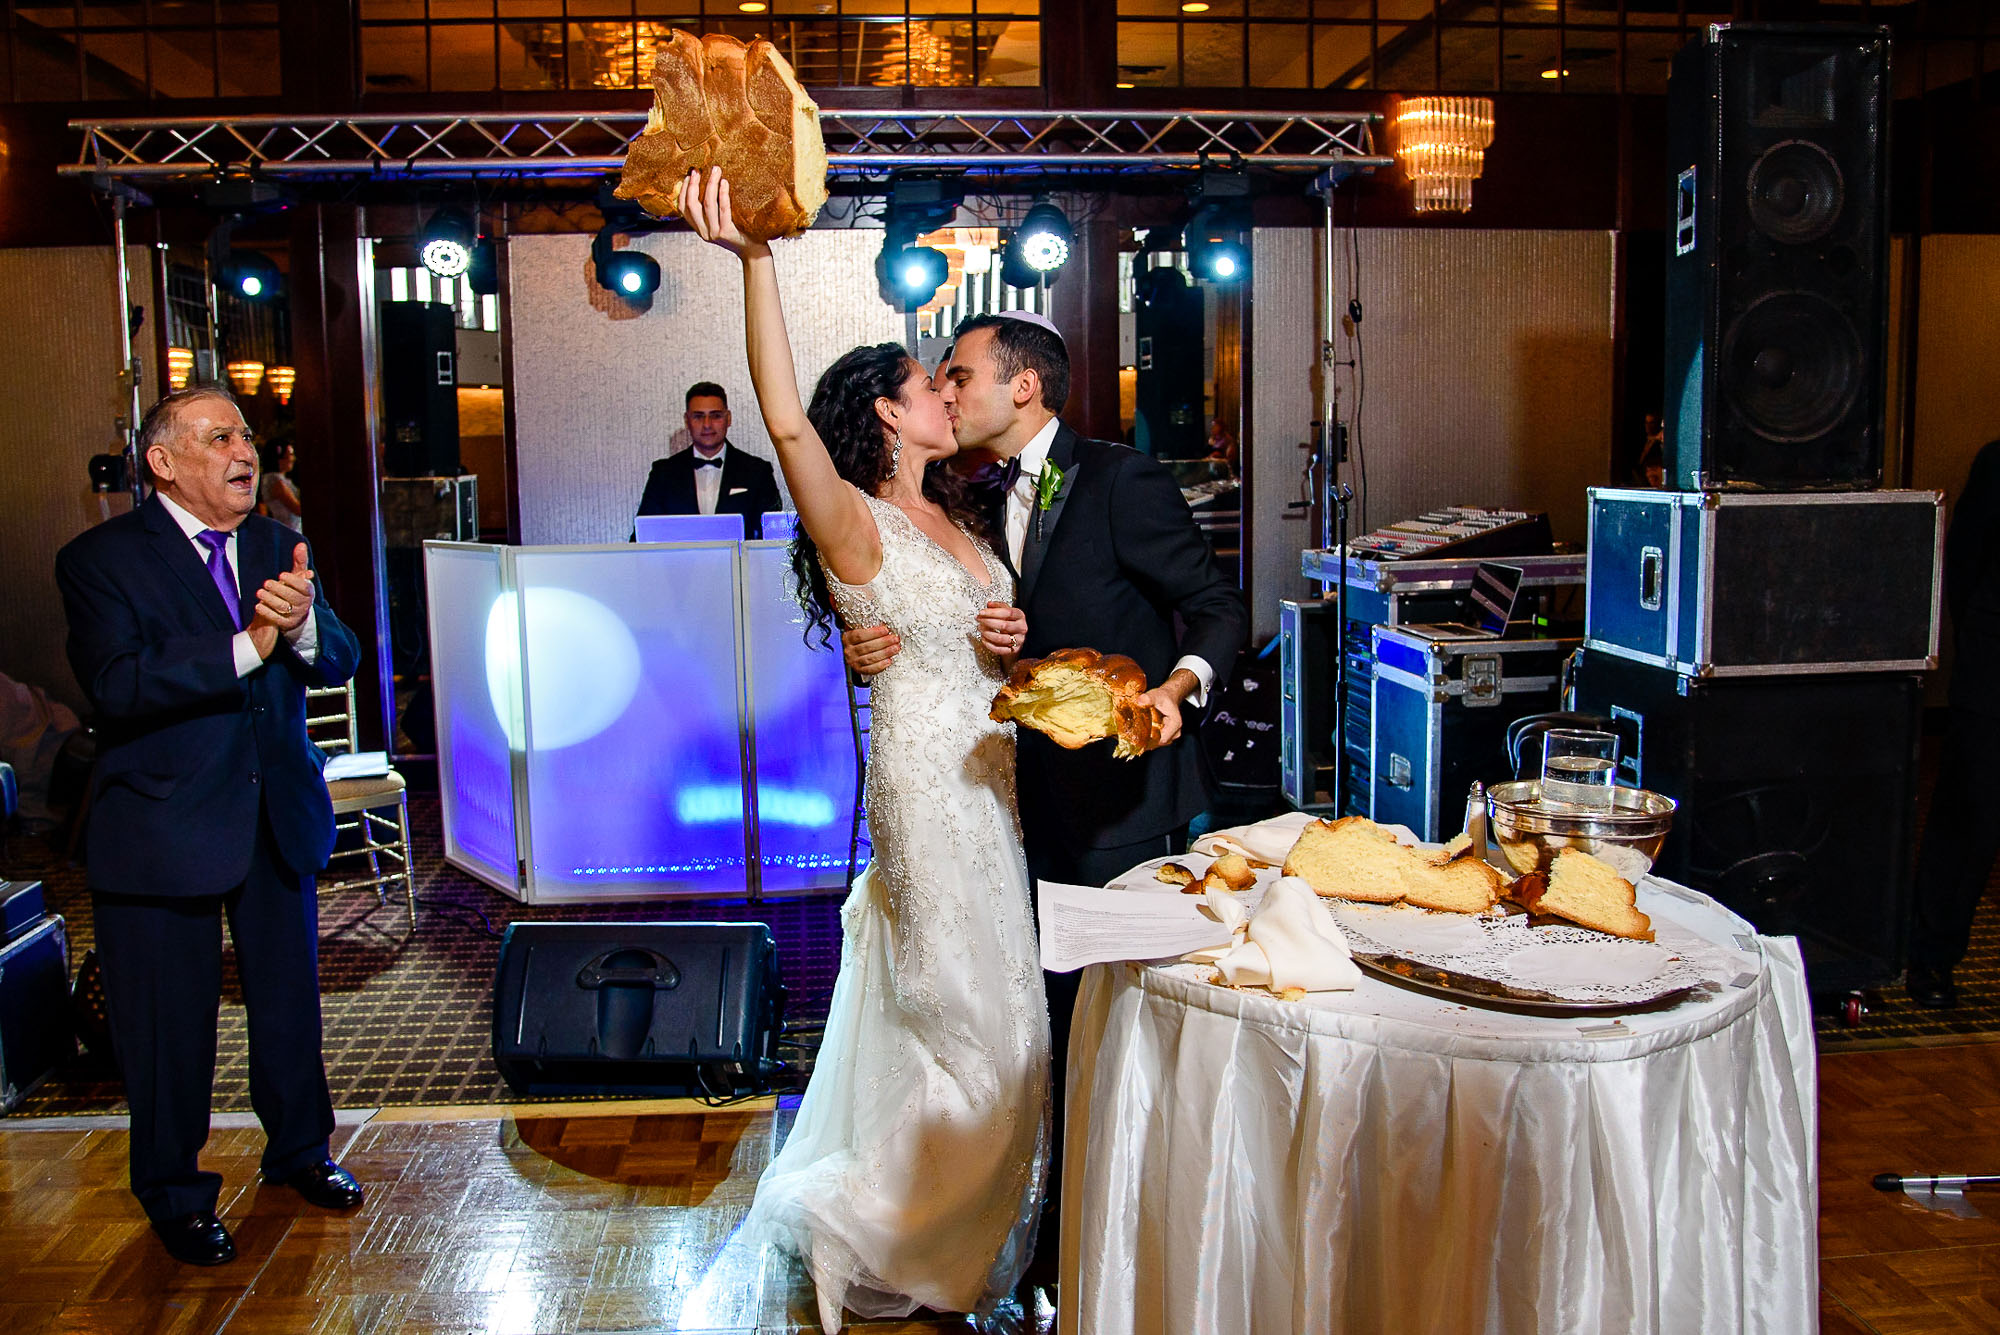 The Sephardic Temple wedding reception